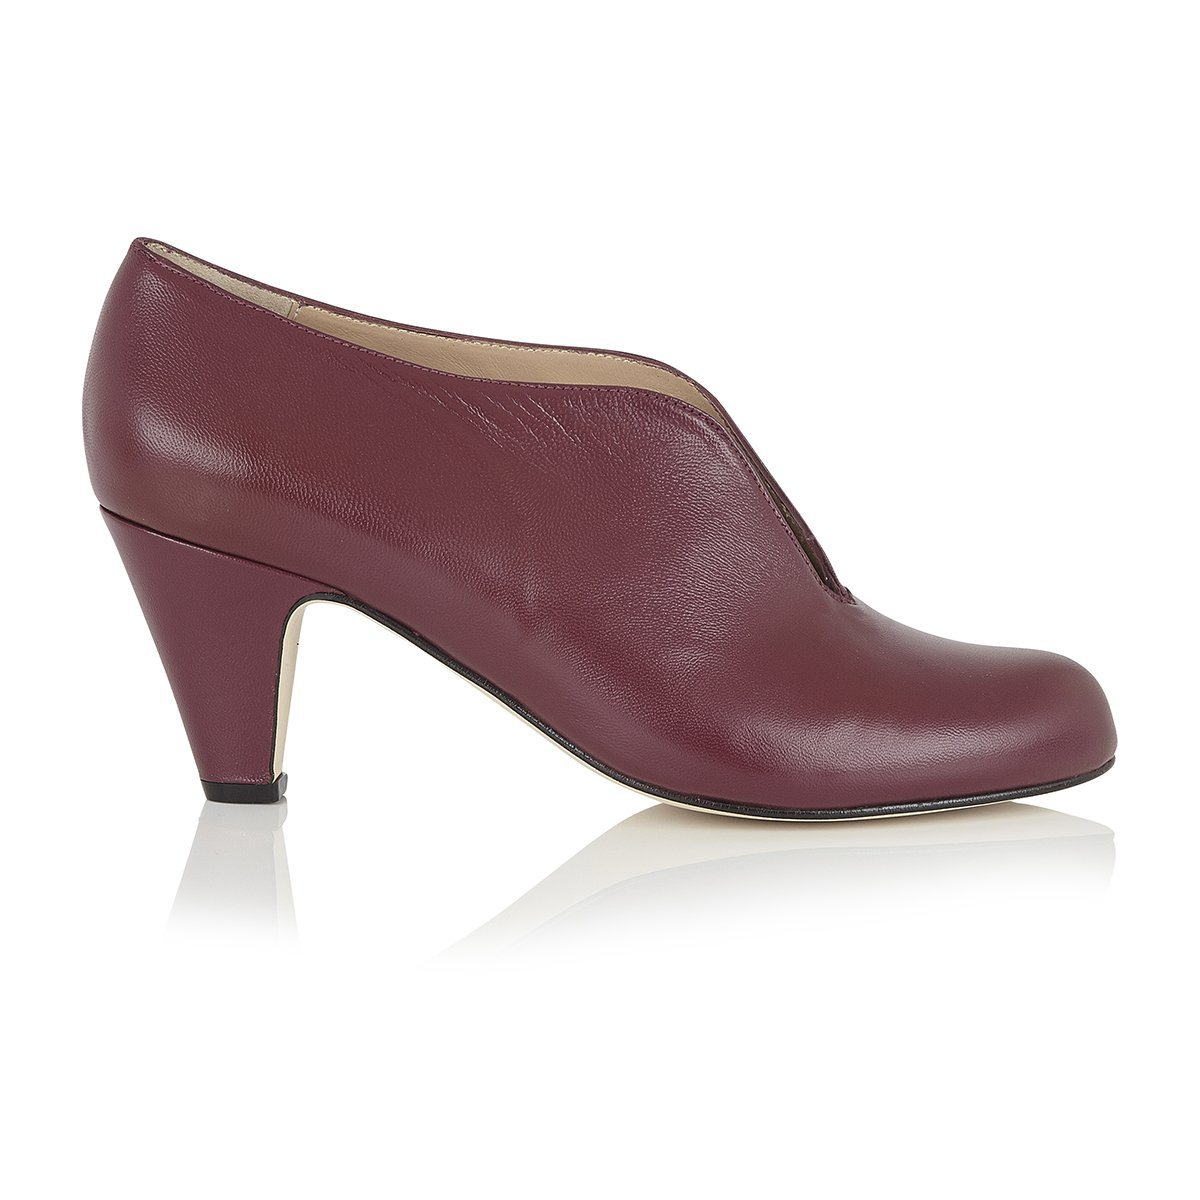 Boss Lady - Luxury Plum Shoe Boots - Shoes by Shaherazad